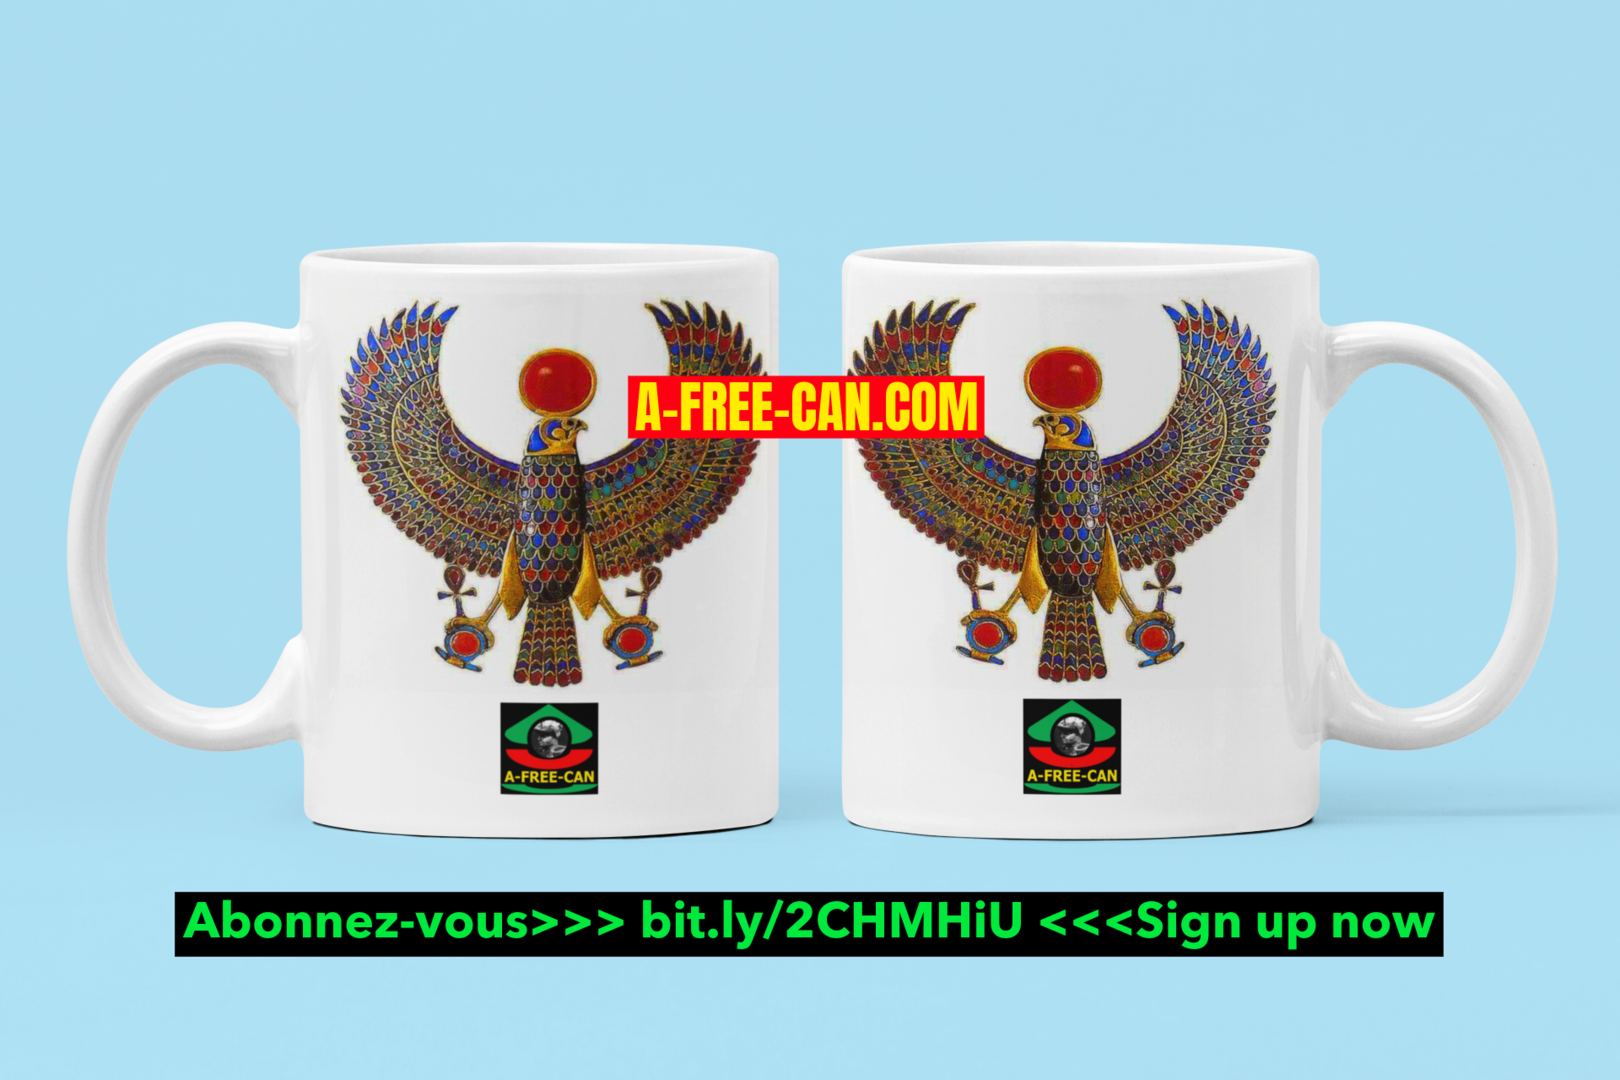 """RE-HORAKHTY, Un Trésor de Toutankhamon (V2)"" by A-FREE-CAN.COM - (Pack de 2 Mugs)"